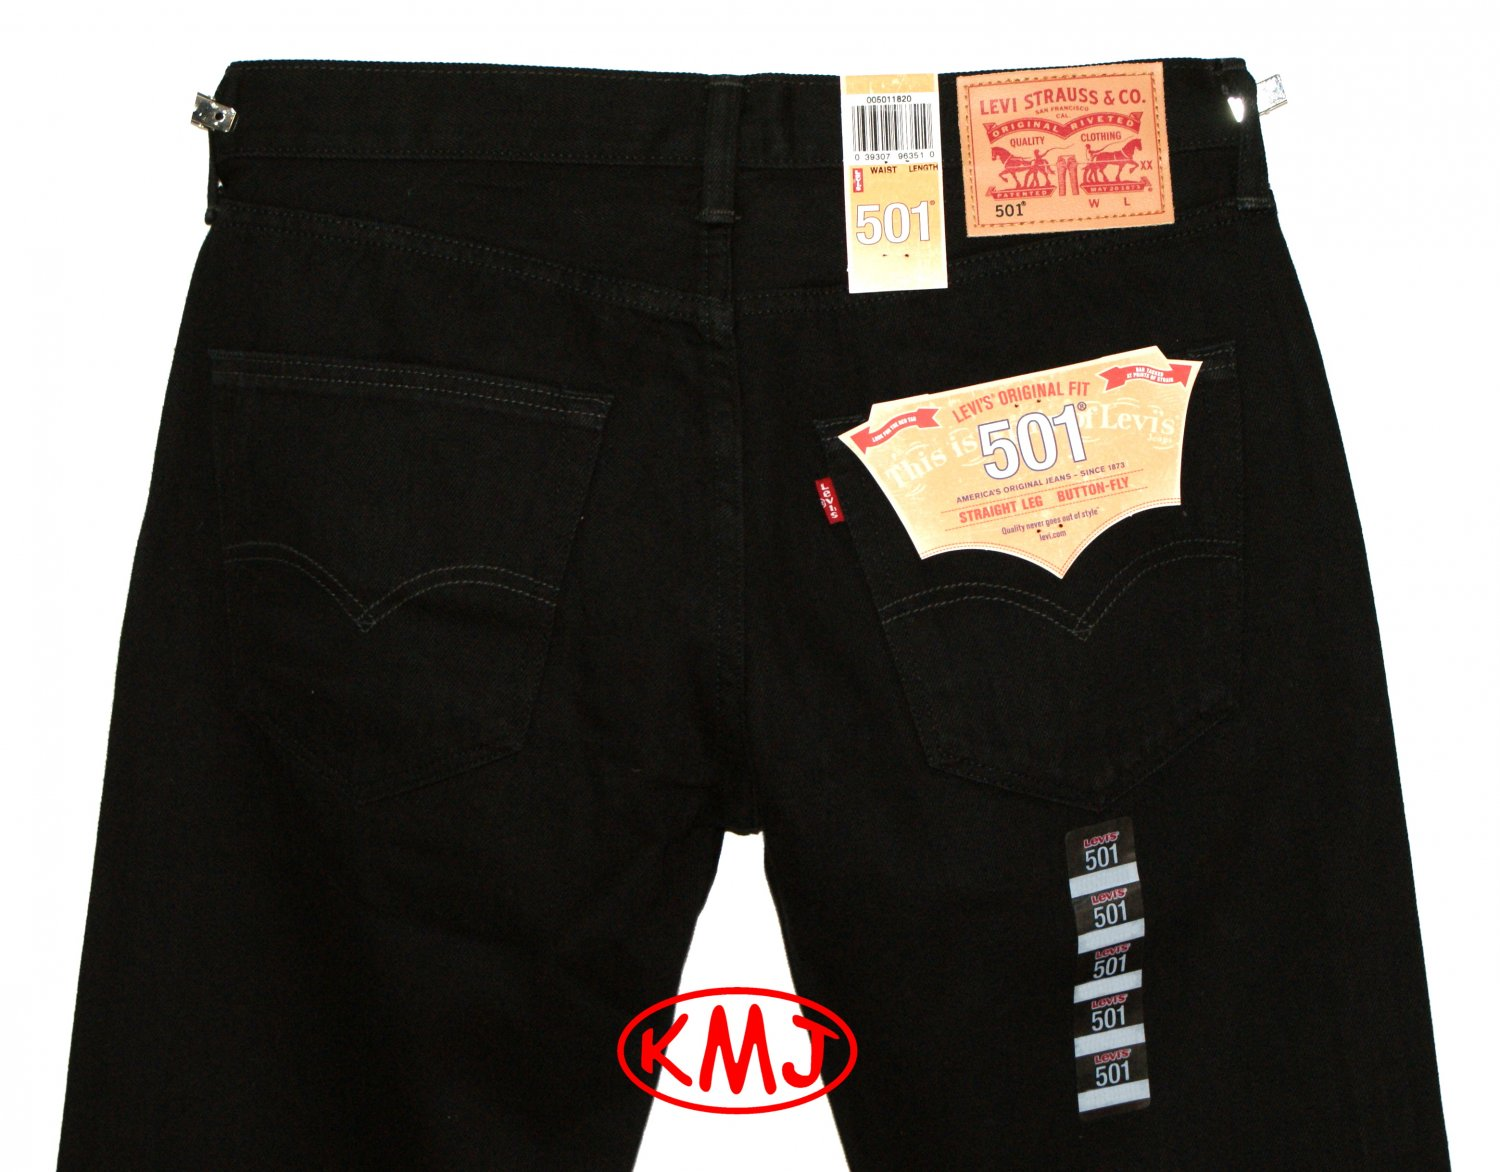 LEVI'S 501 CLASSIC STRAIGHT LEG BUTTON-FLY BLACK DENIM JEANS in size W31 L34 (Actual size 31 33)